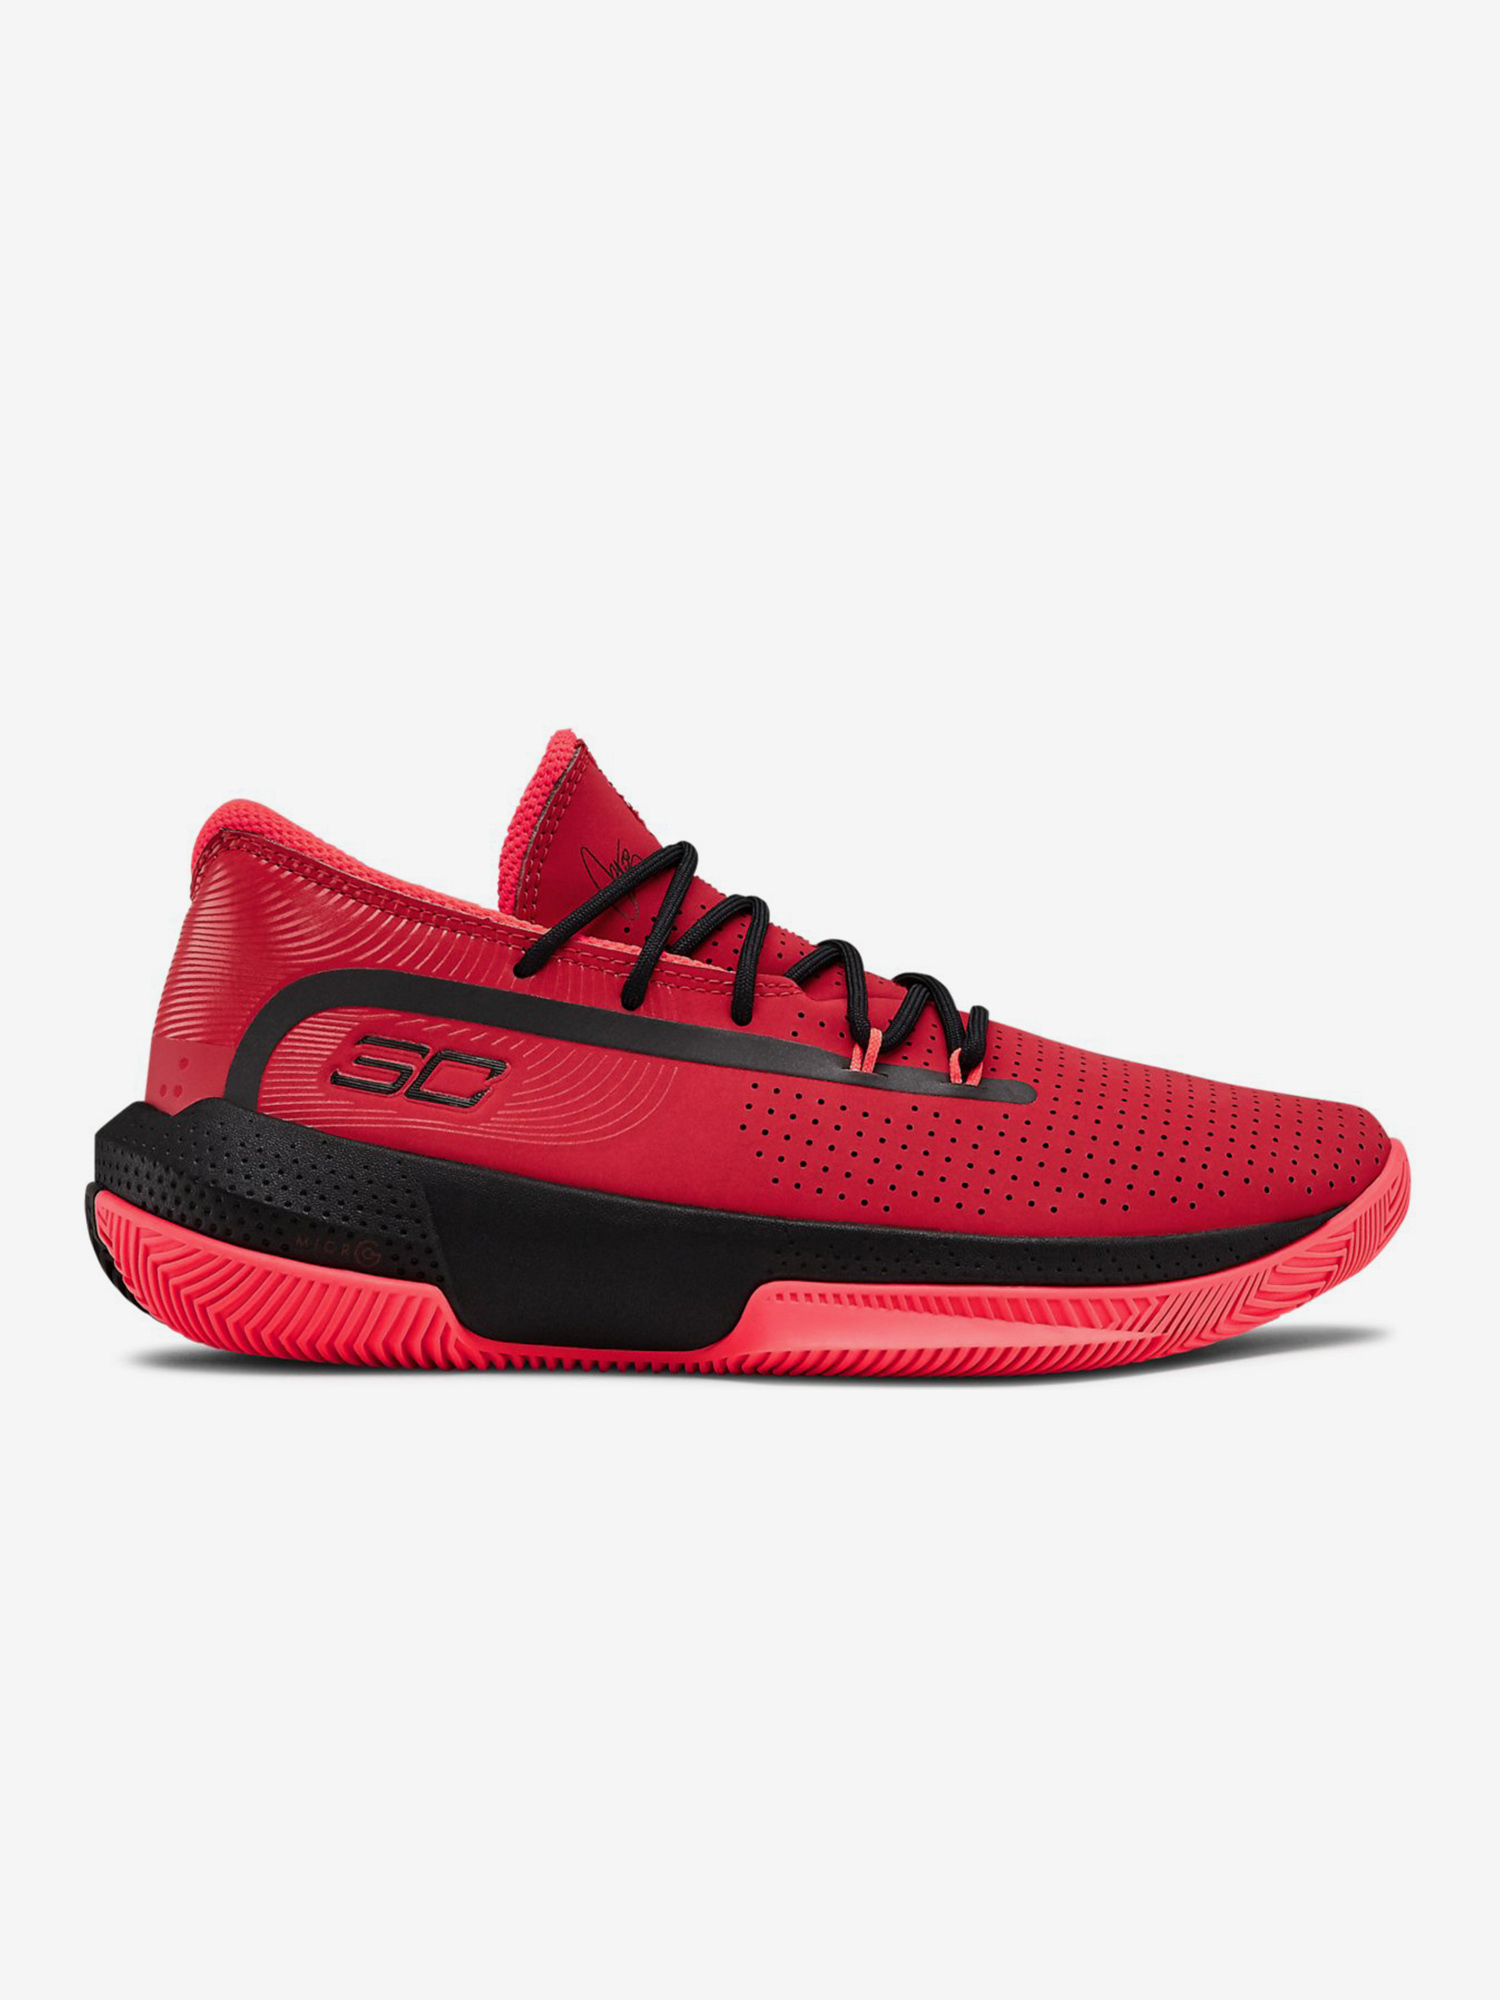 Boty Under Armour Gs Sc 3Zer0 Iii-Red